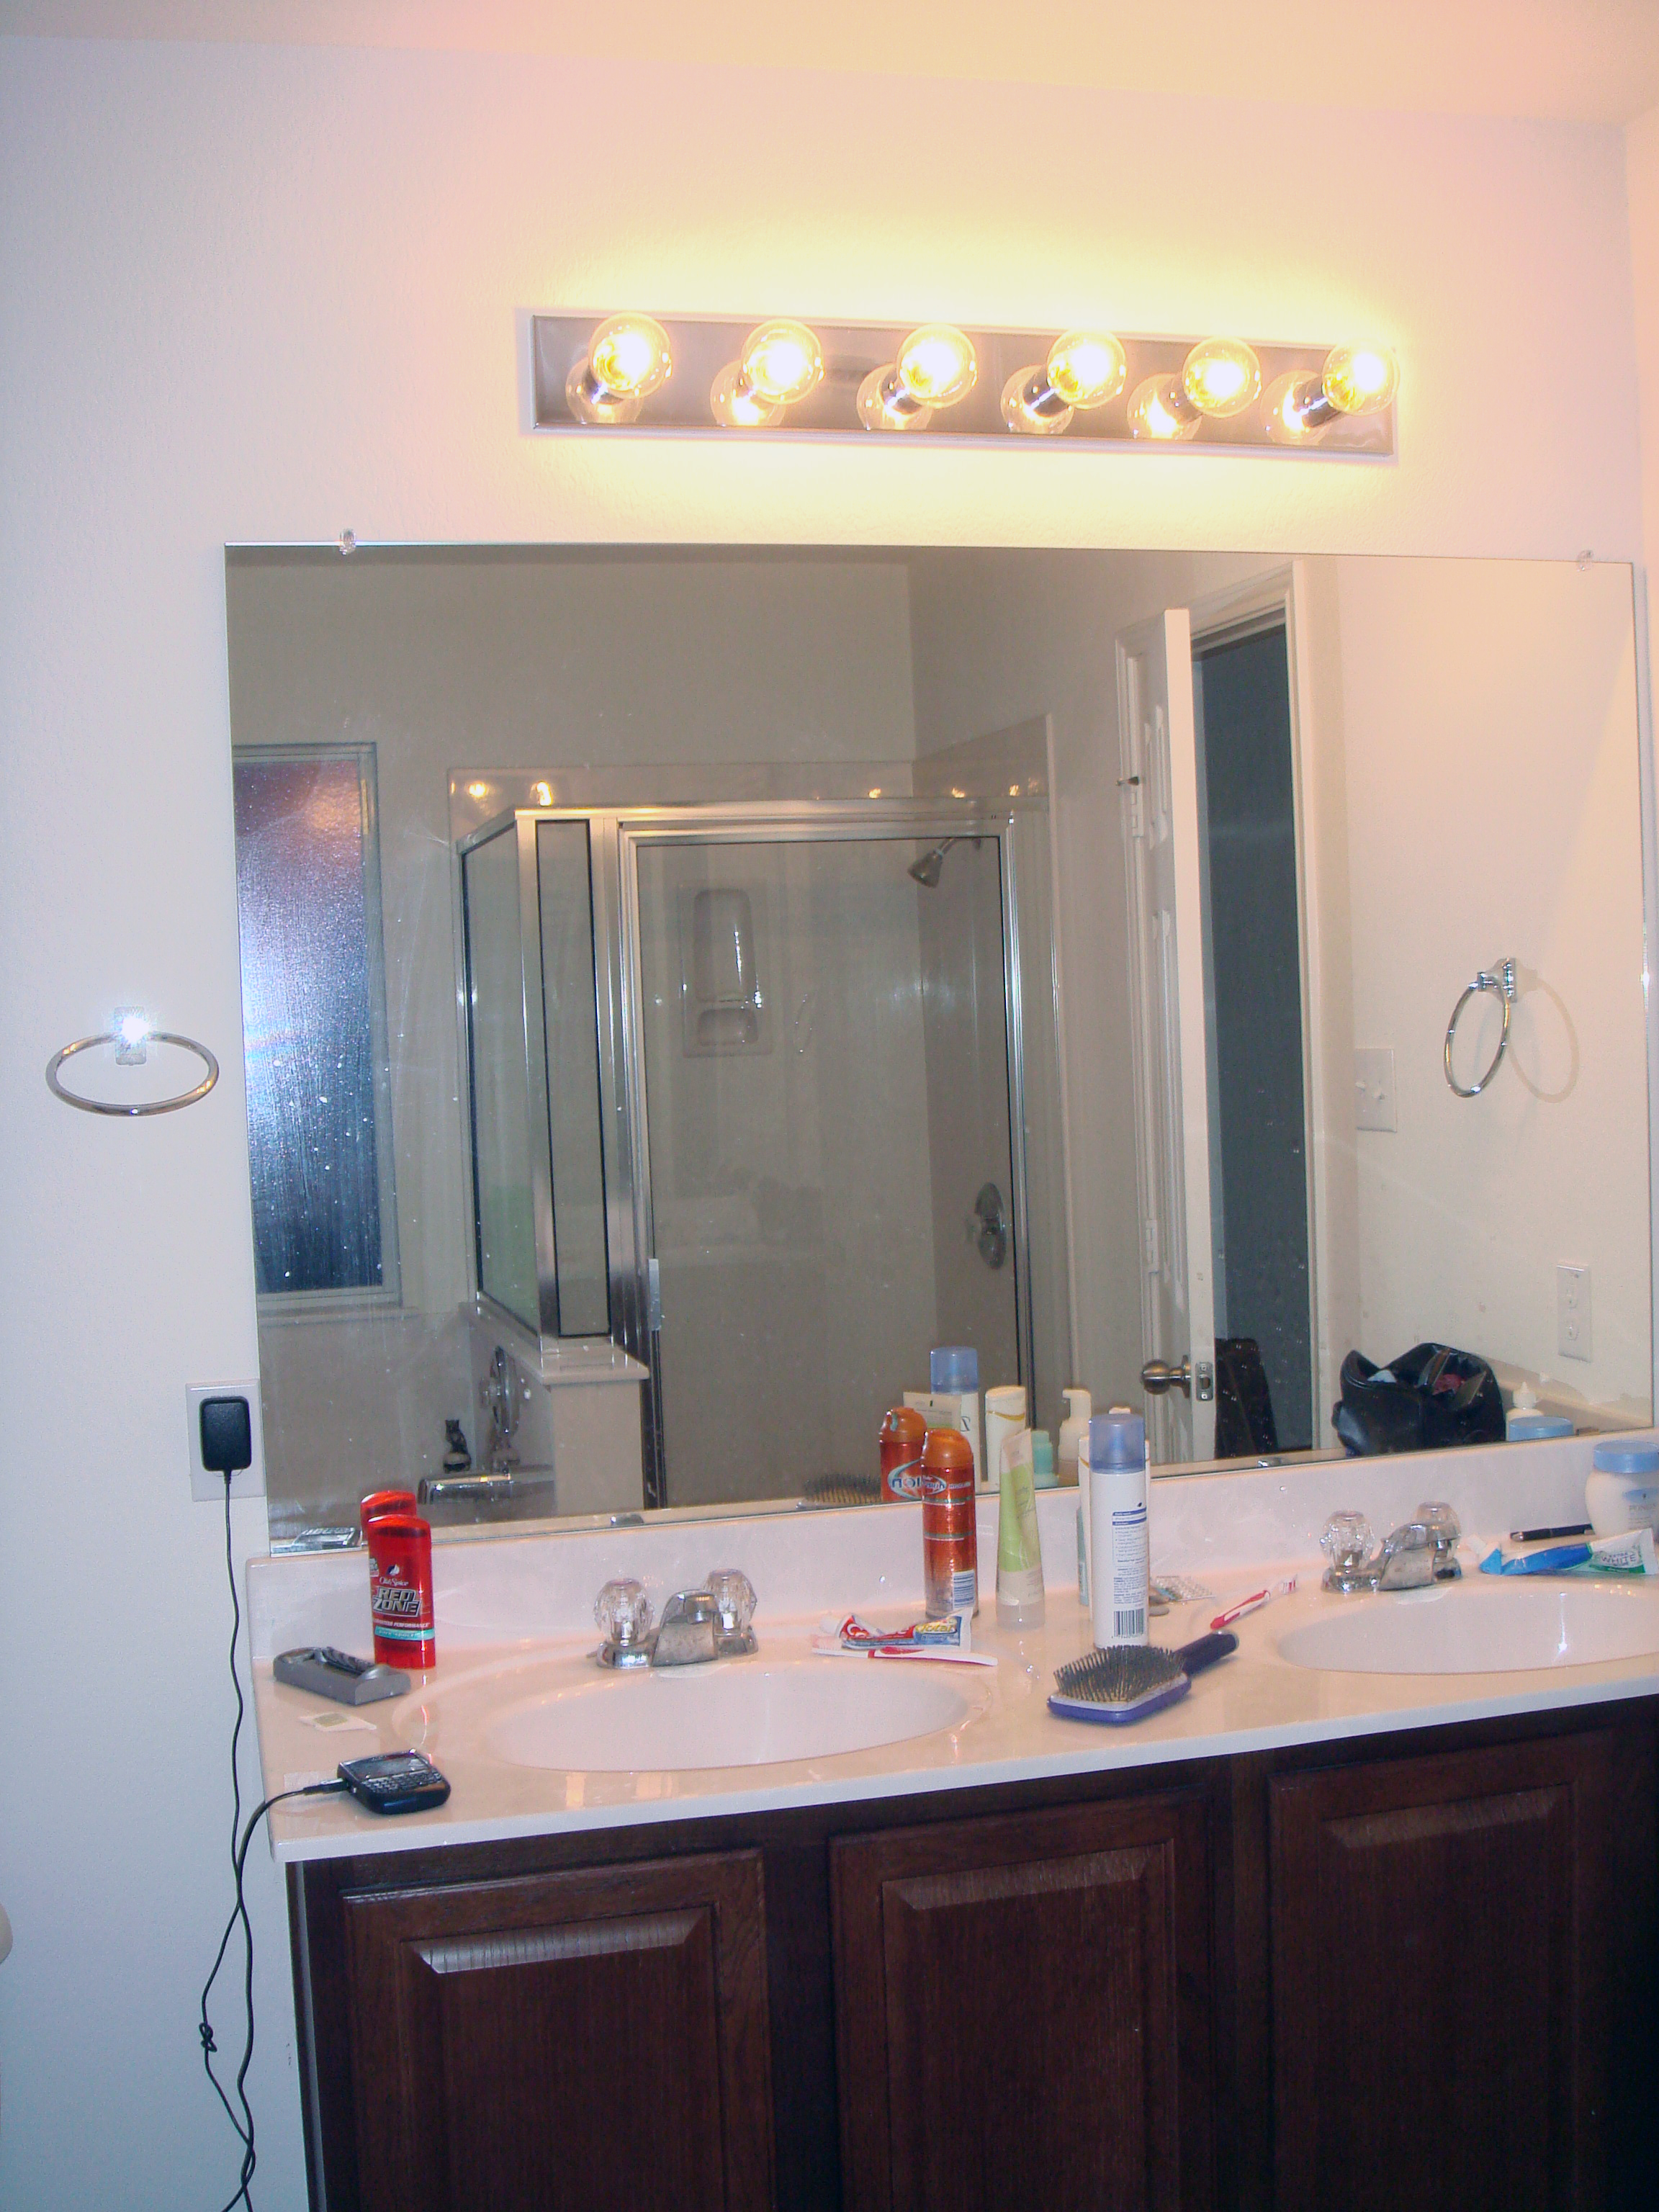 Bathroom lighting ideas choices and indecision  What